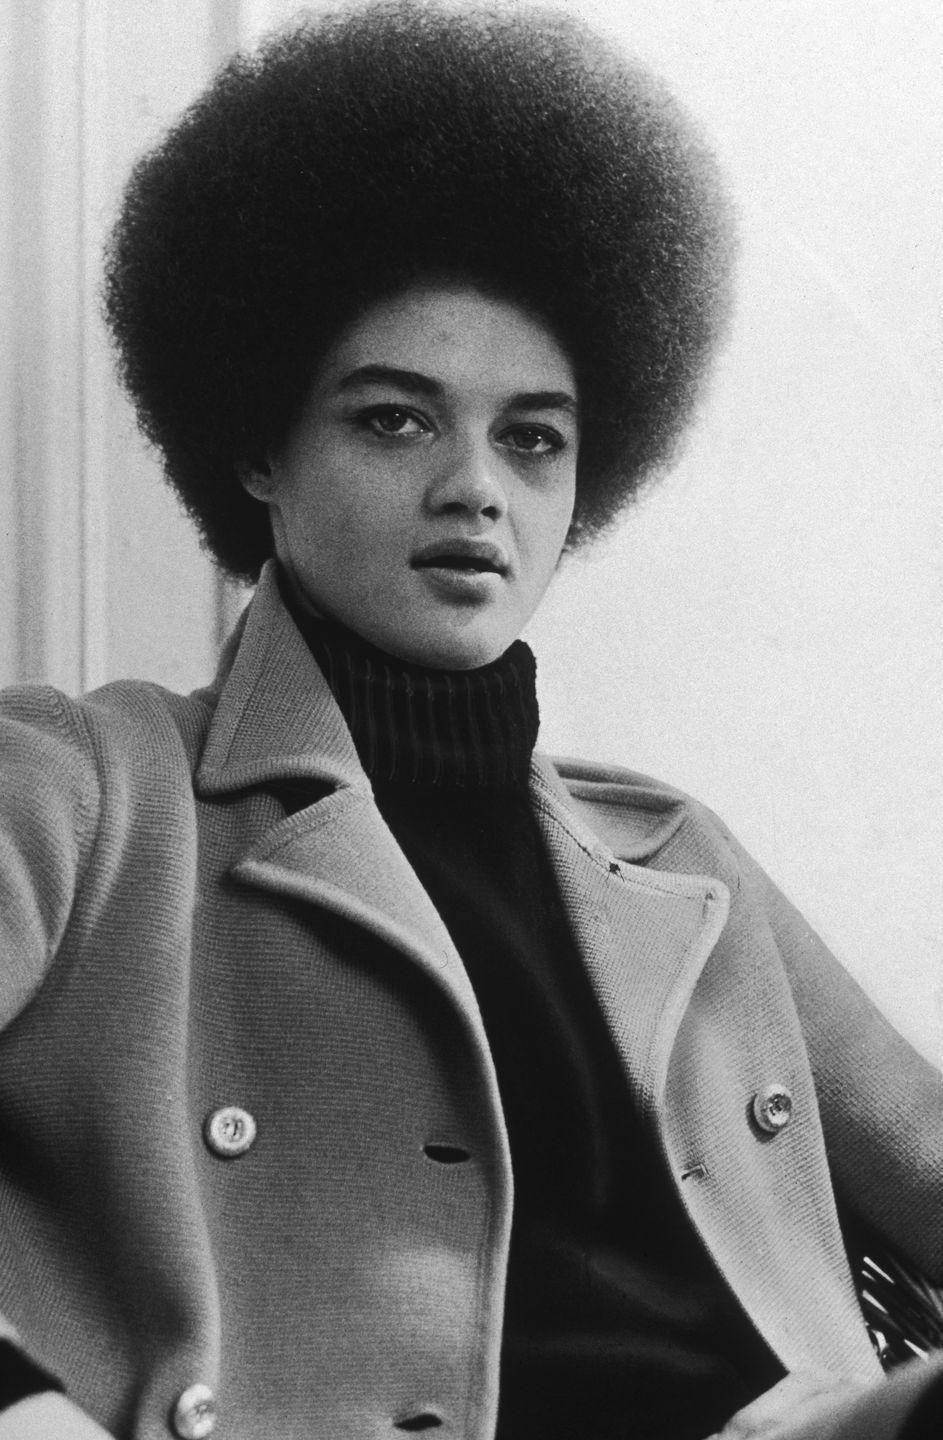 <p>Kathleen Cleaver made the black turtleneck look good while she fought for equality. </p>